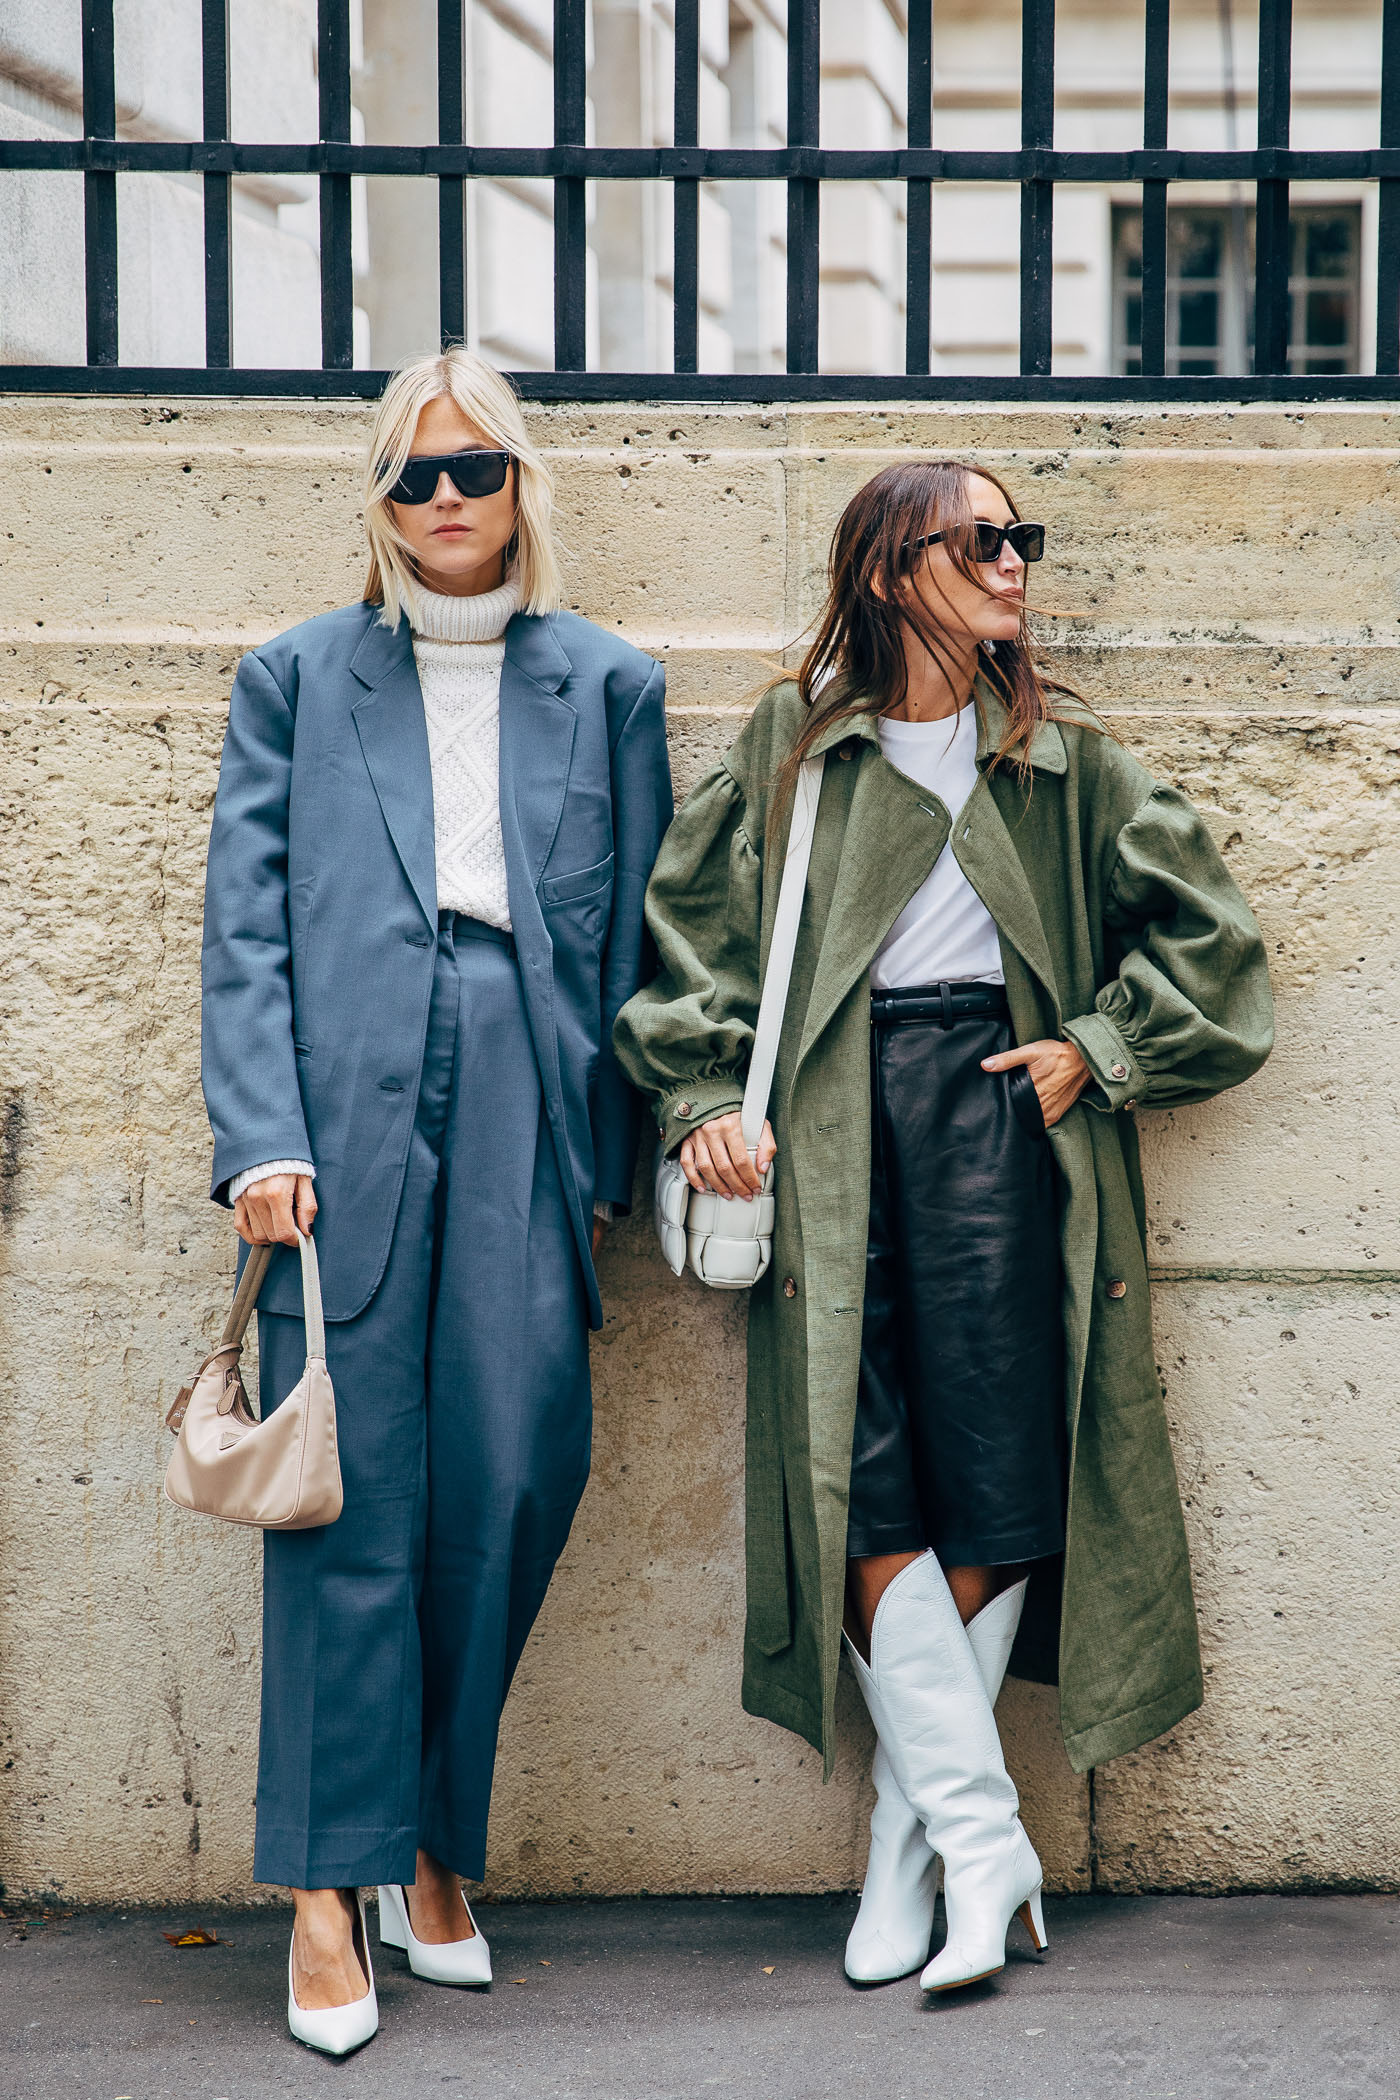 Linda-Tol-and-Chloe-Harrouche-by-STYLEDUMONDE-Street-Style-Fashion-Photography20190928_48A7702